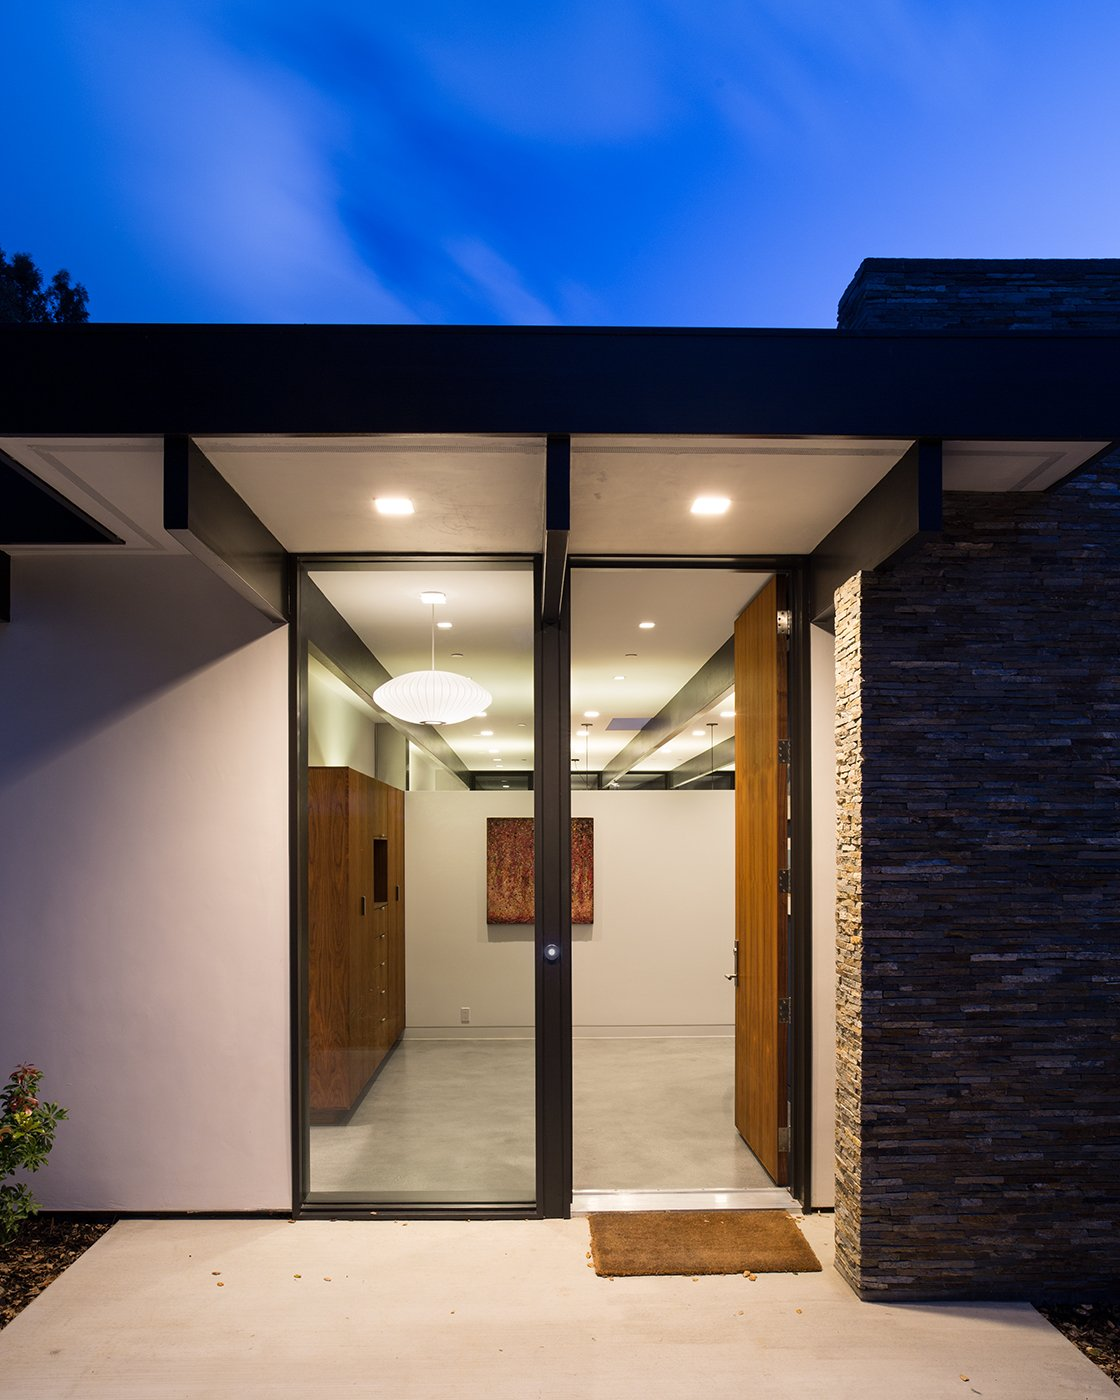 Modern Atrium House  The owners, inspired by mid-century modern architecture, hired Klopf Architecture to design an Eichler-inspired 21st-Century, energy efficient new home that would replace a dilapidated 1940s home. The home follows the gentle slope of the hillside while the overarching post-and-beam roof above provides an unchanging datum line. The changing moods of nature animate the house because of views through large glass walls at nearly every vantage point. Every square foot of the house remains close to the ground creating and adding to the sense of connection with nature.  Klopf Architecture by Klopf Architecture